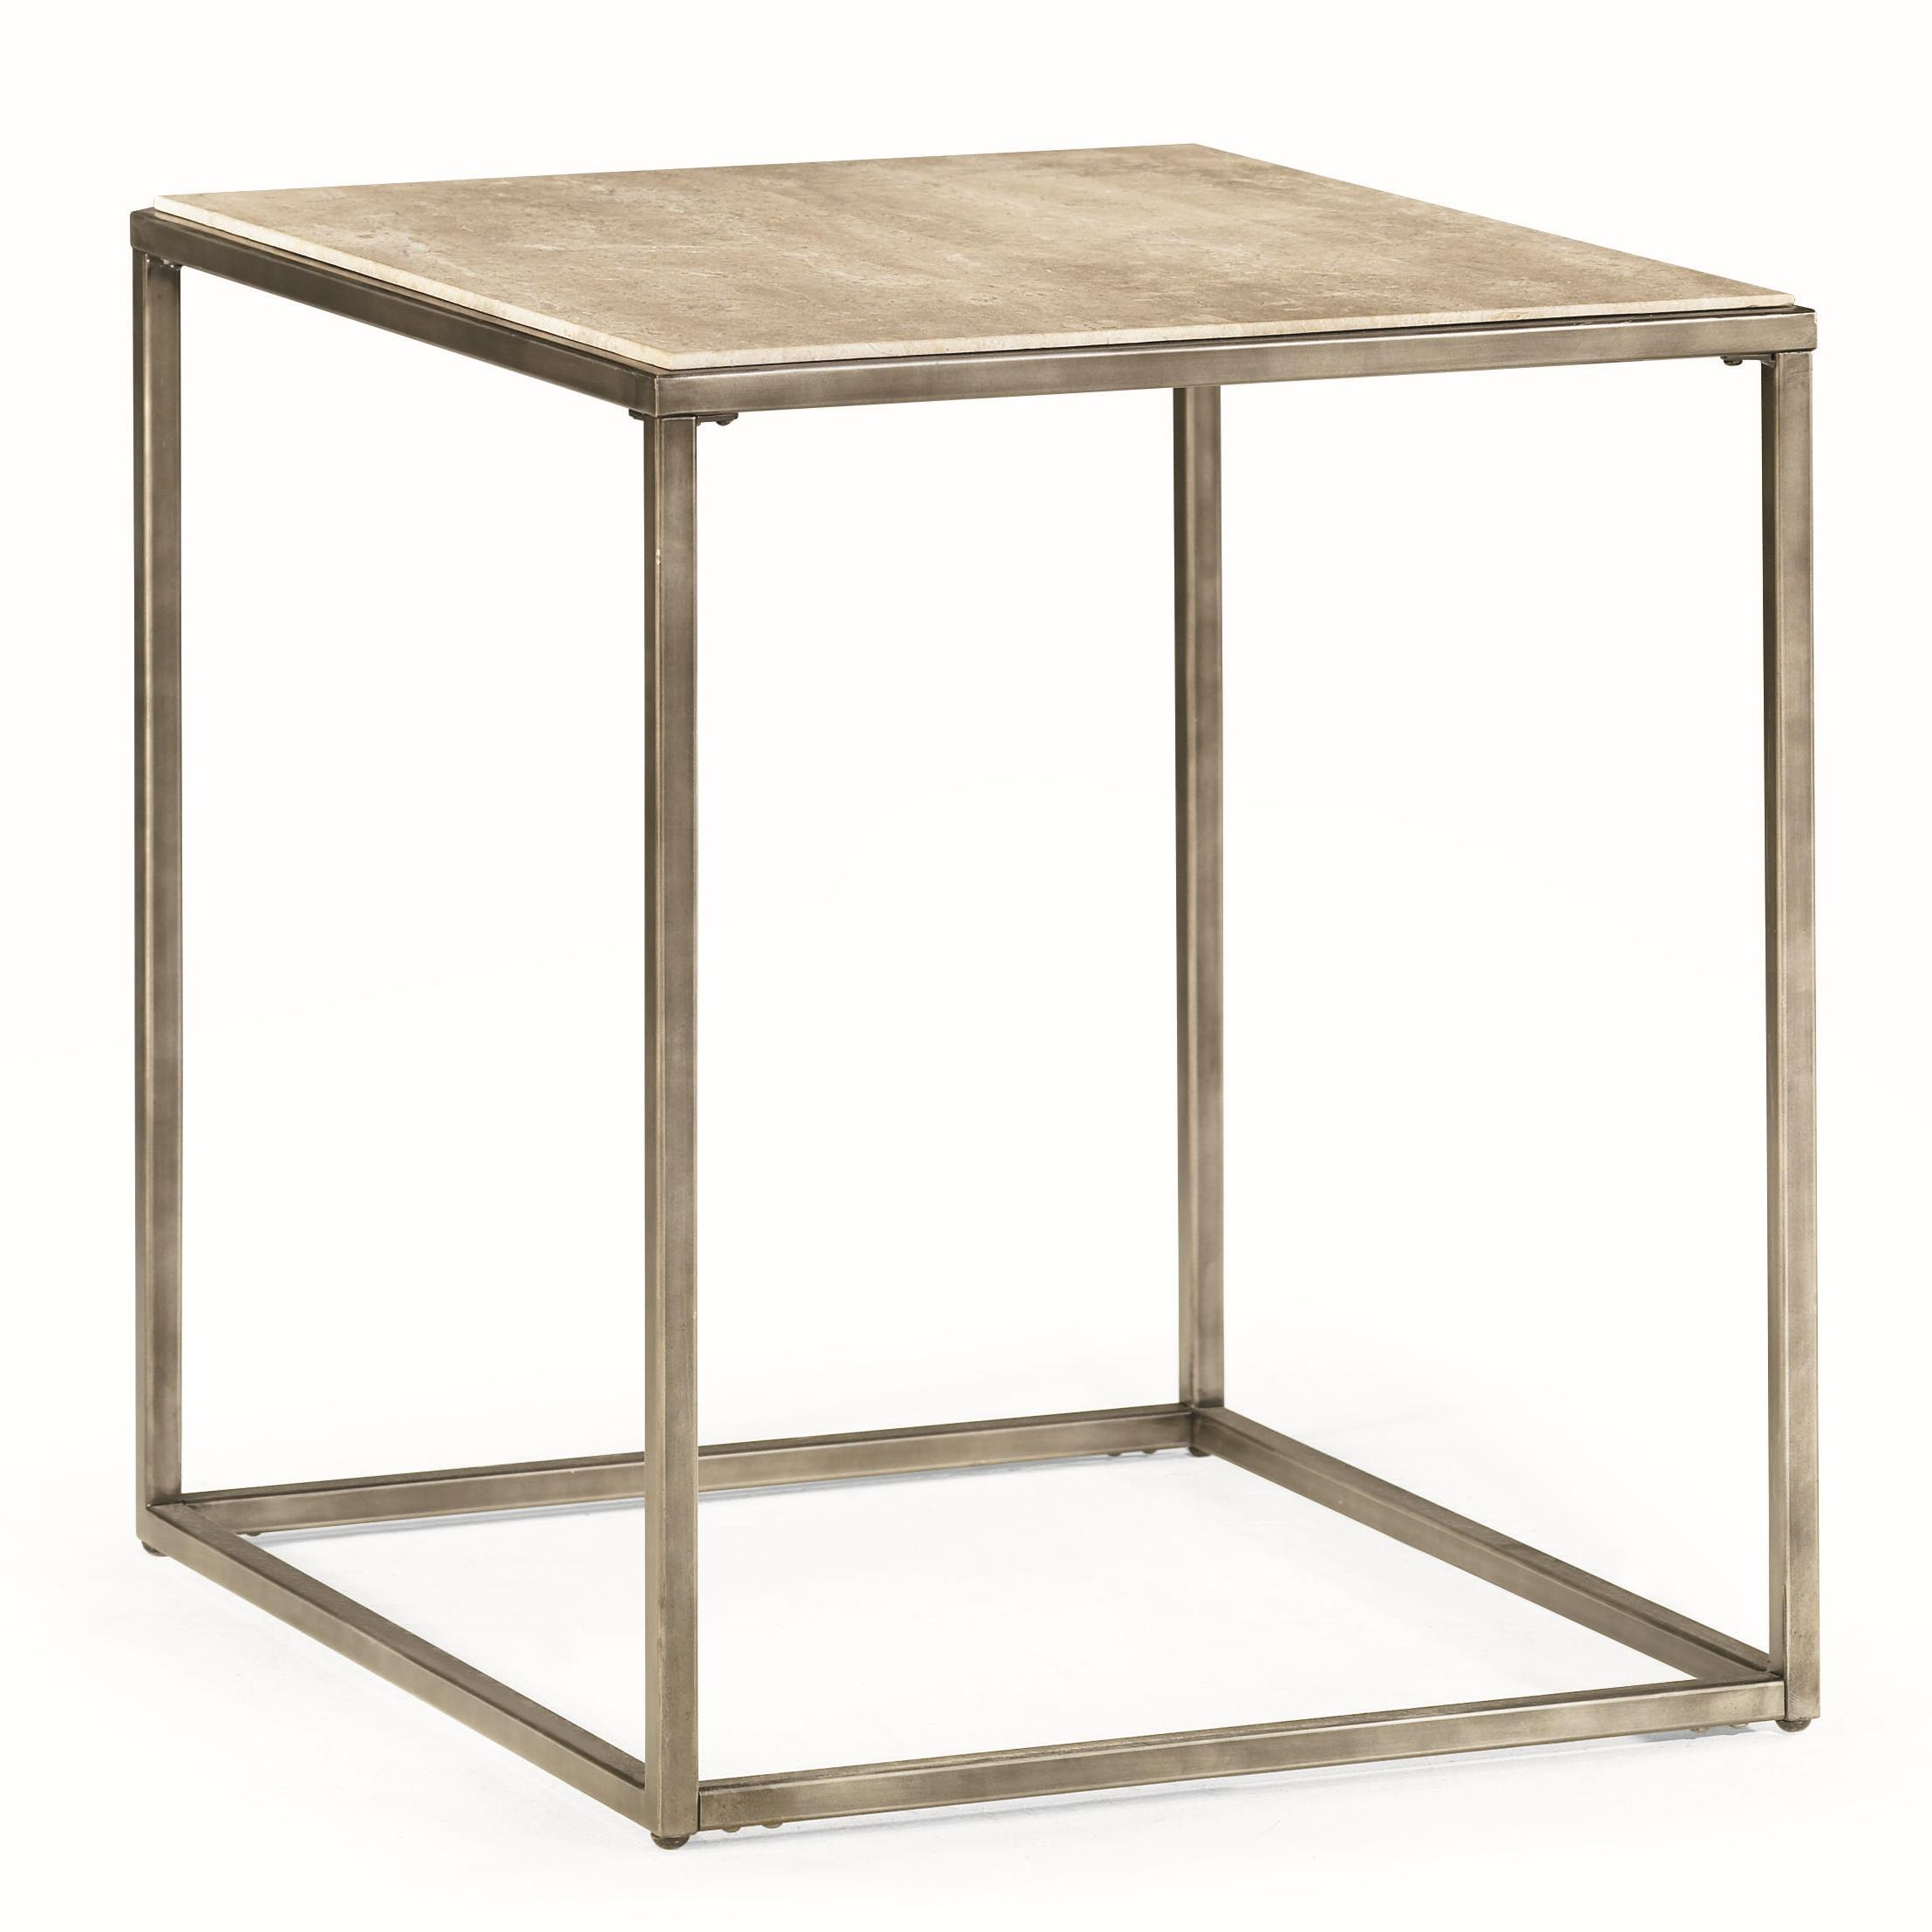 Hammary Modern Basics Rectangular End Table - Item Number: 190-915